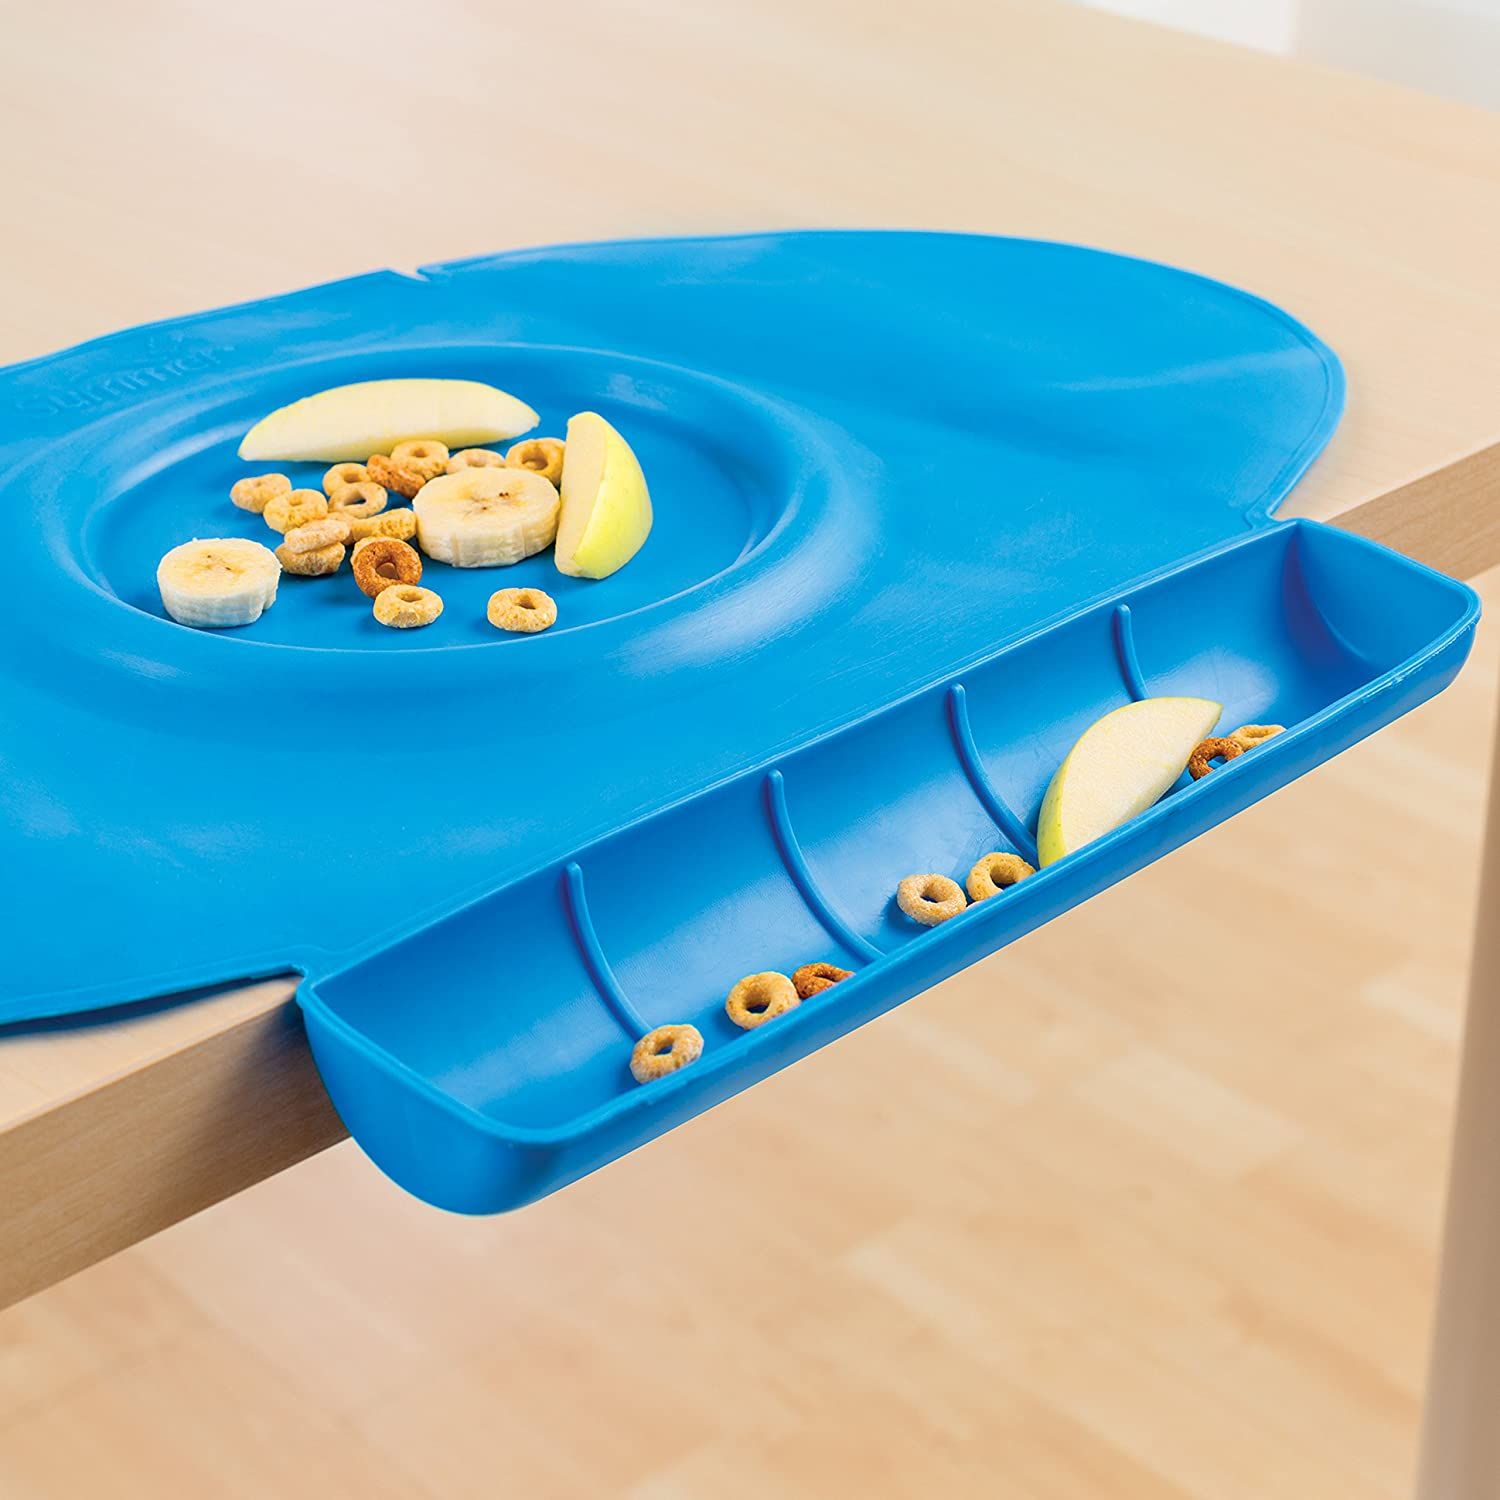 Summer Infant Tiny Diner 2 Portable Placemat, Blue: Amazon.ca: Baby